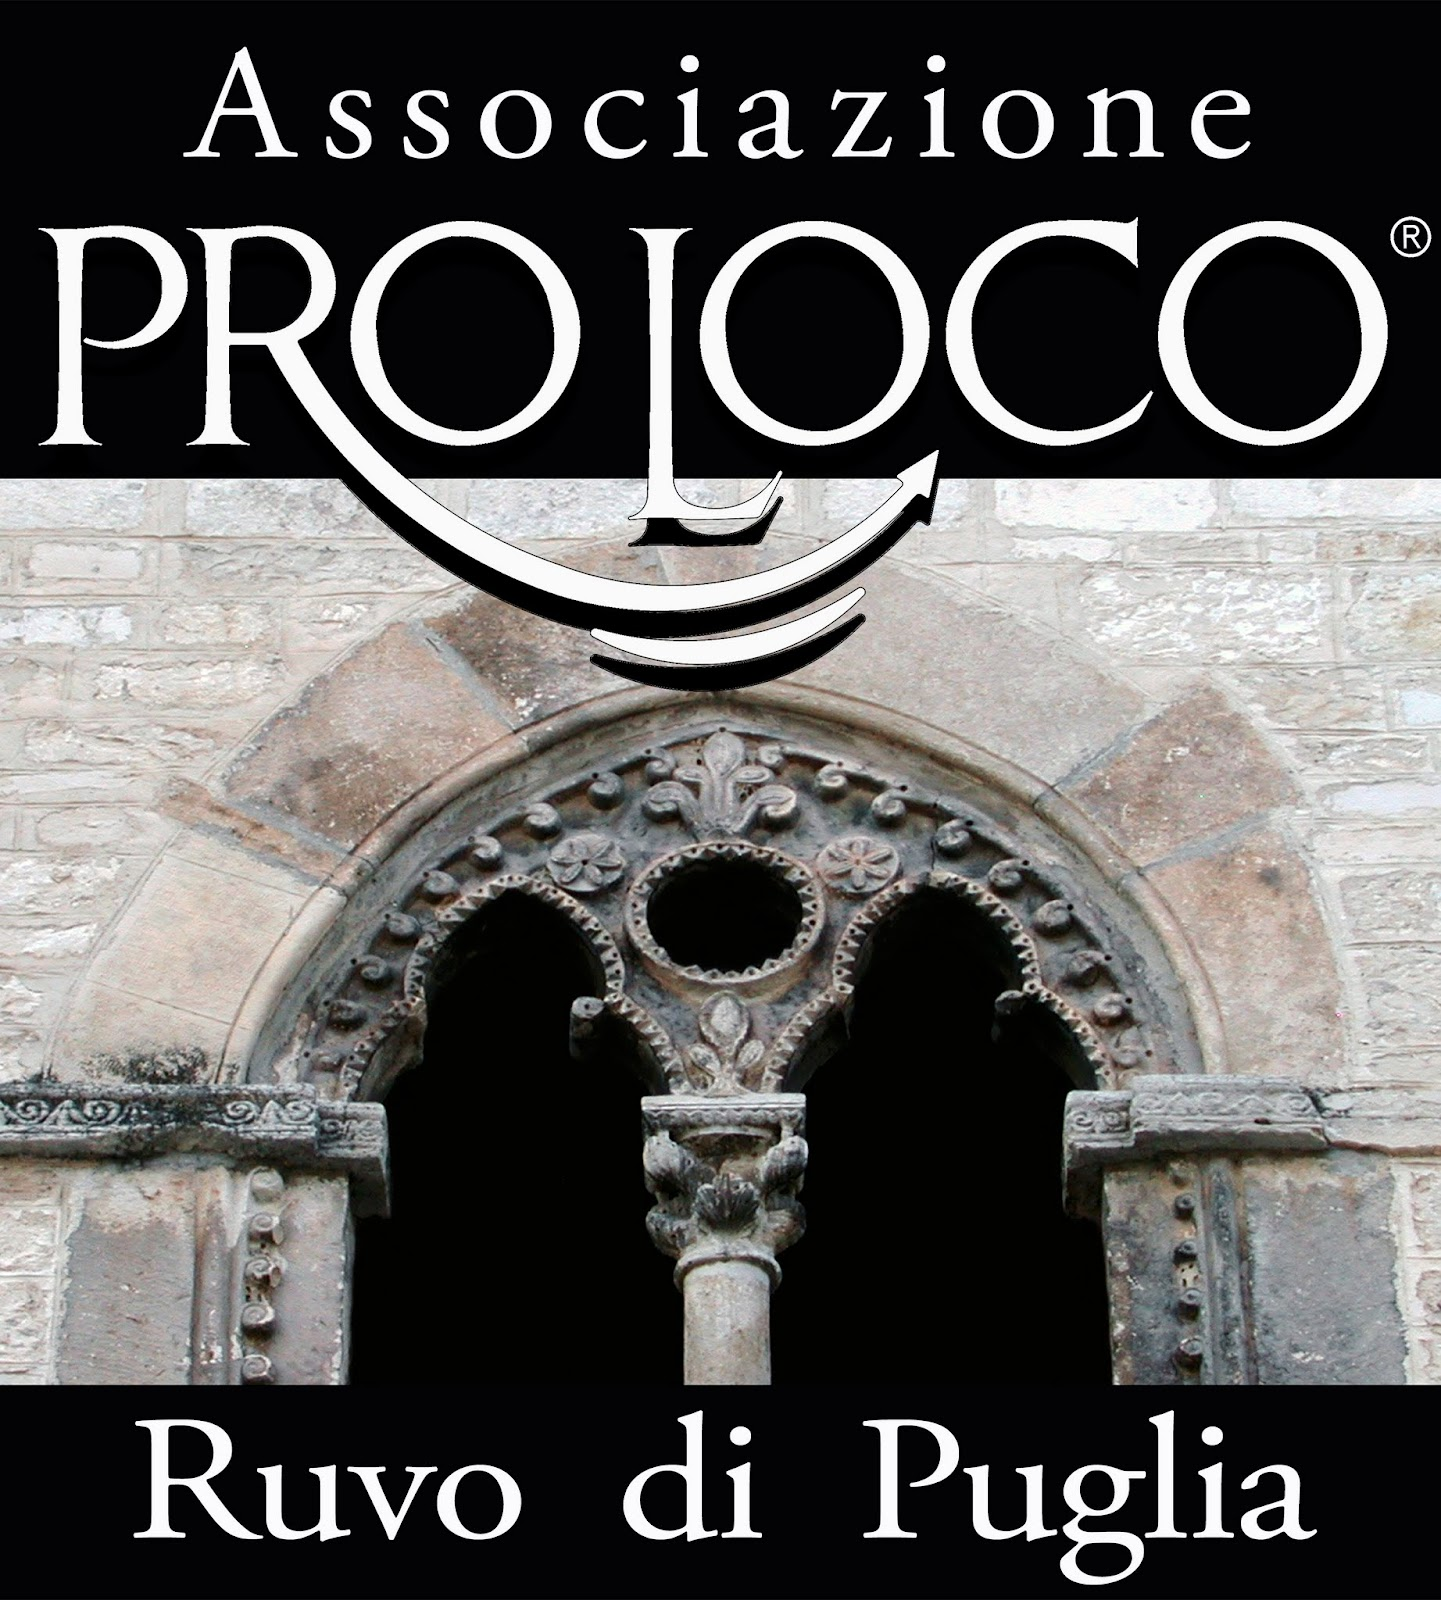 http://www.prolocoruvodipuglia.it/